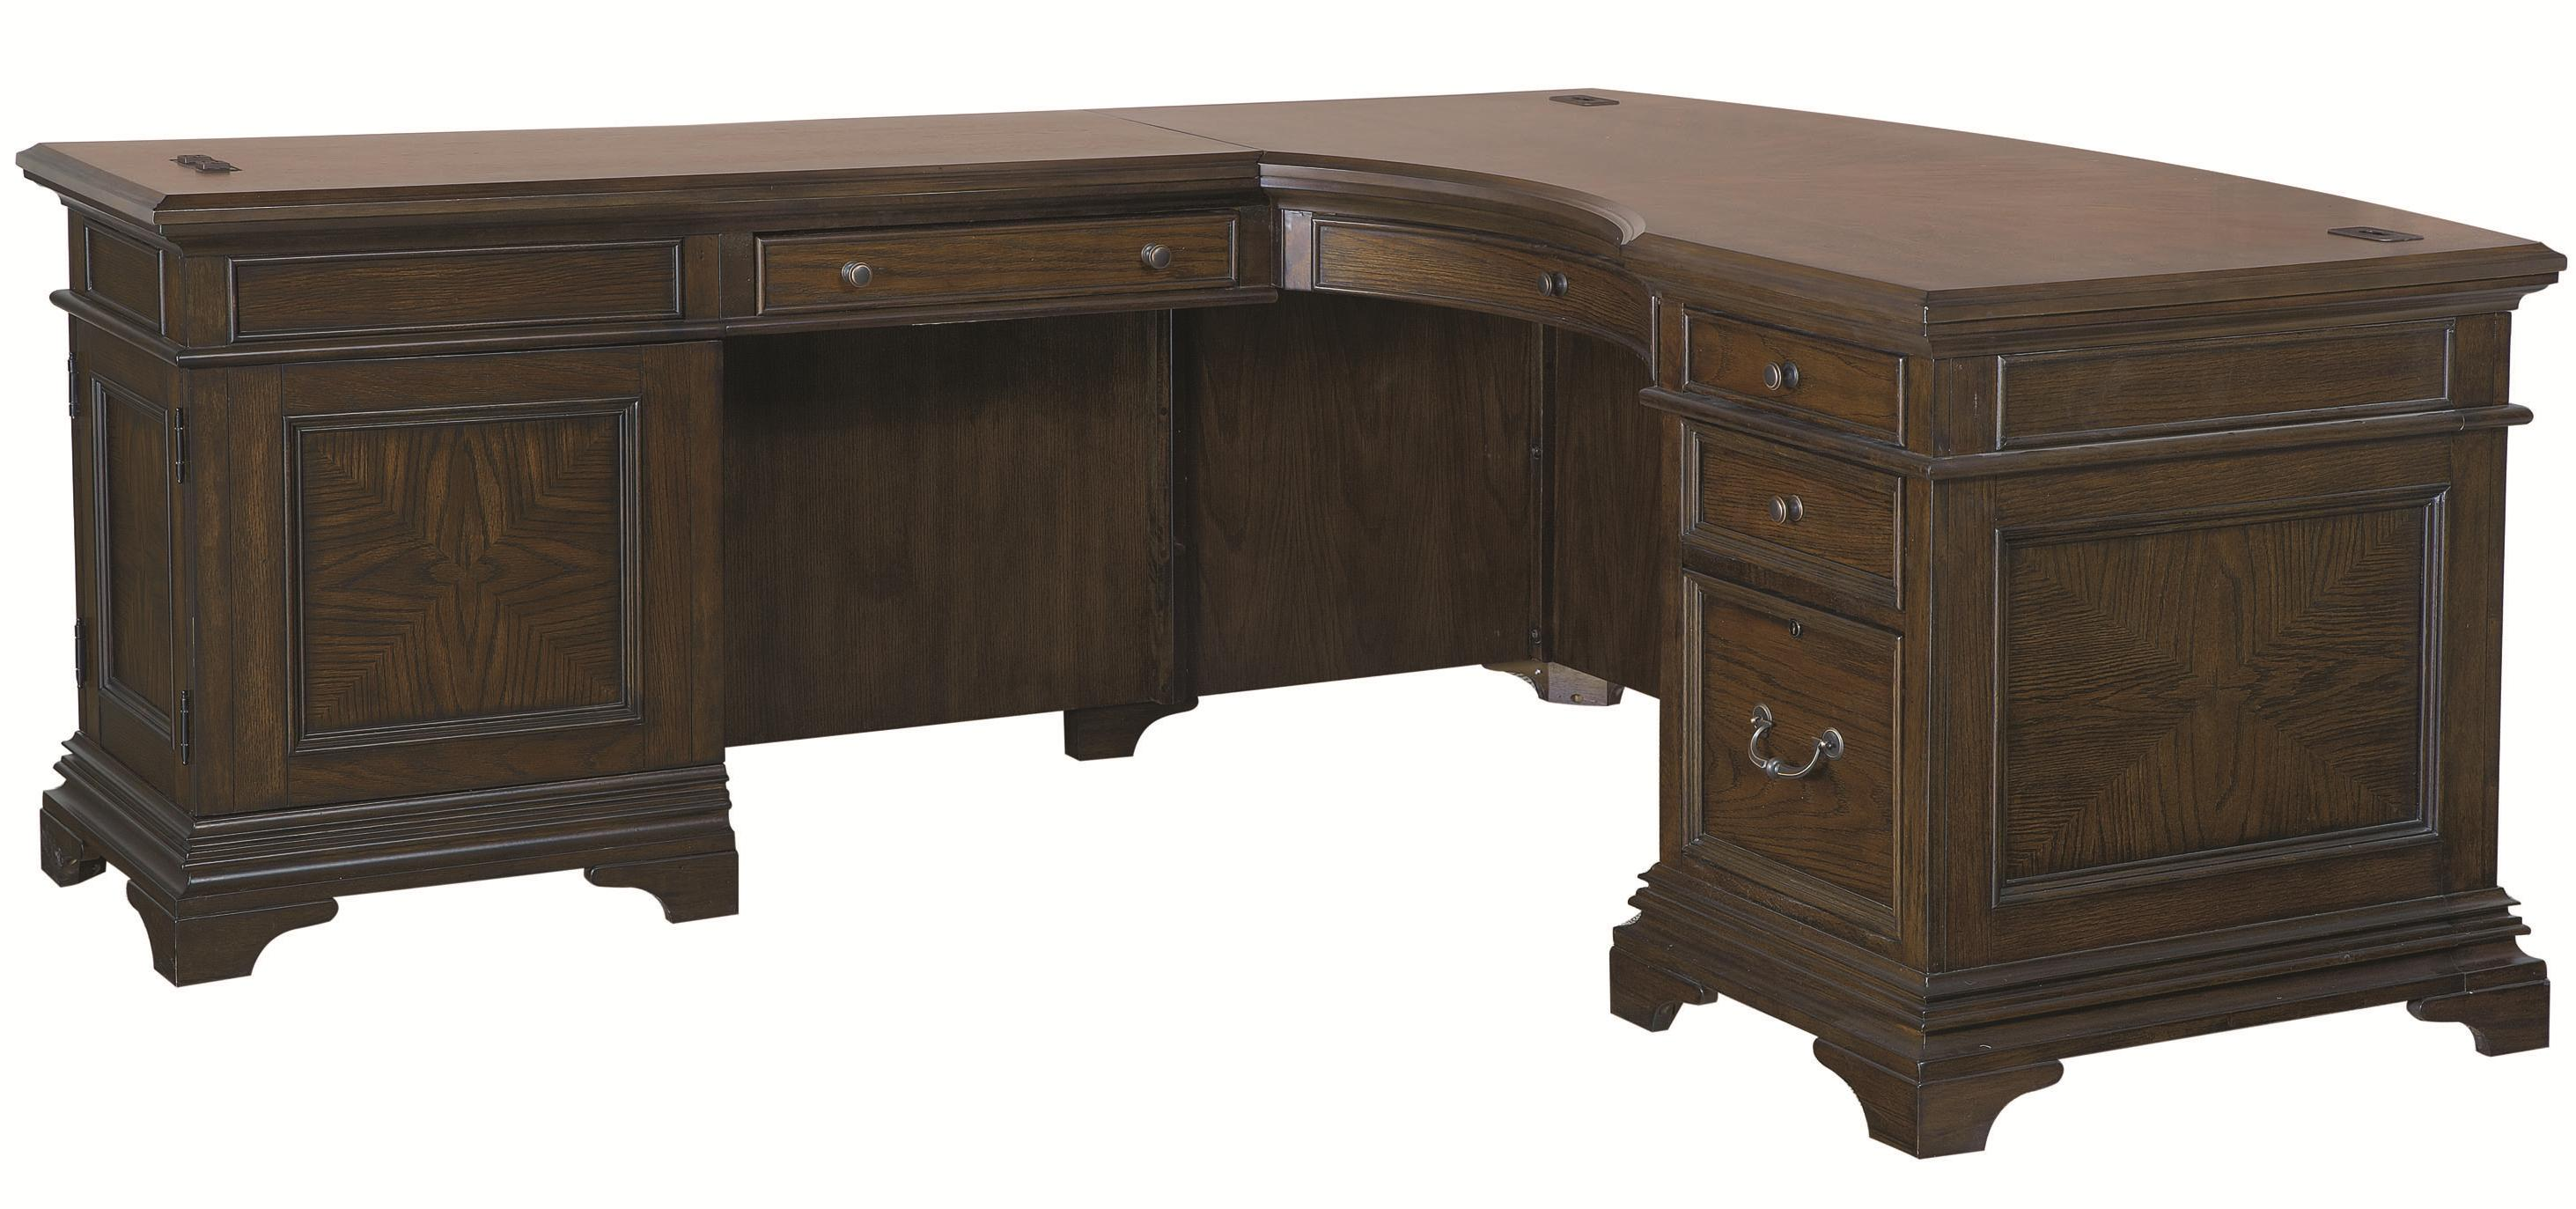 Desk and Reversible Return with 5 Drawers